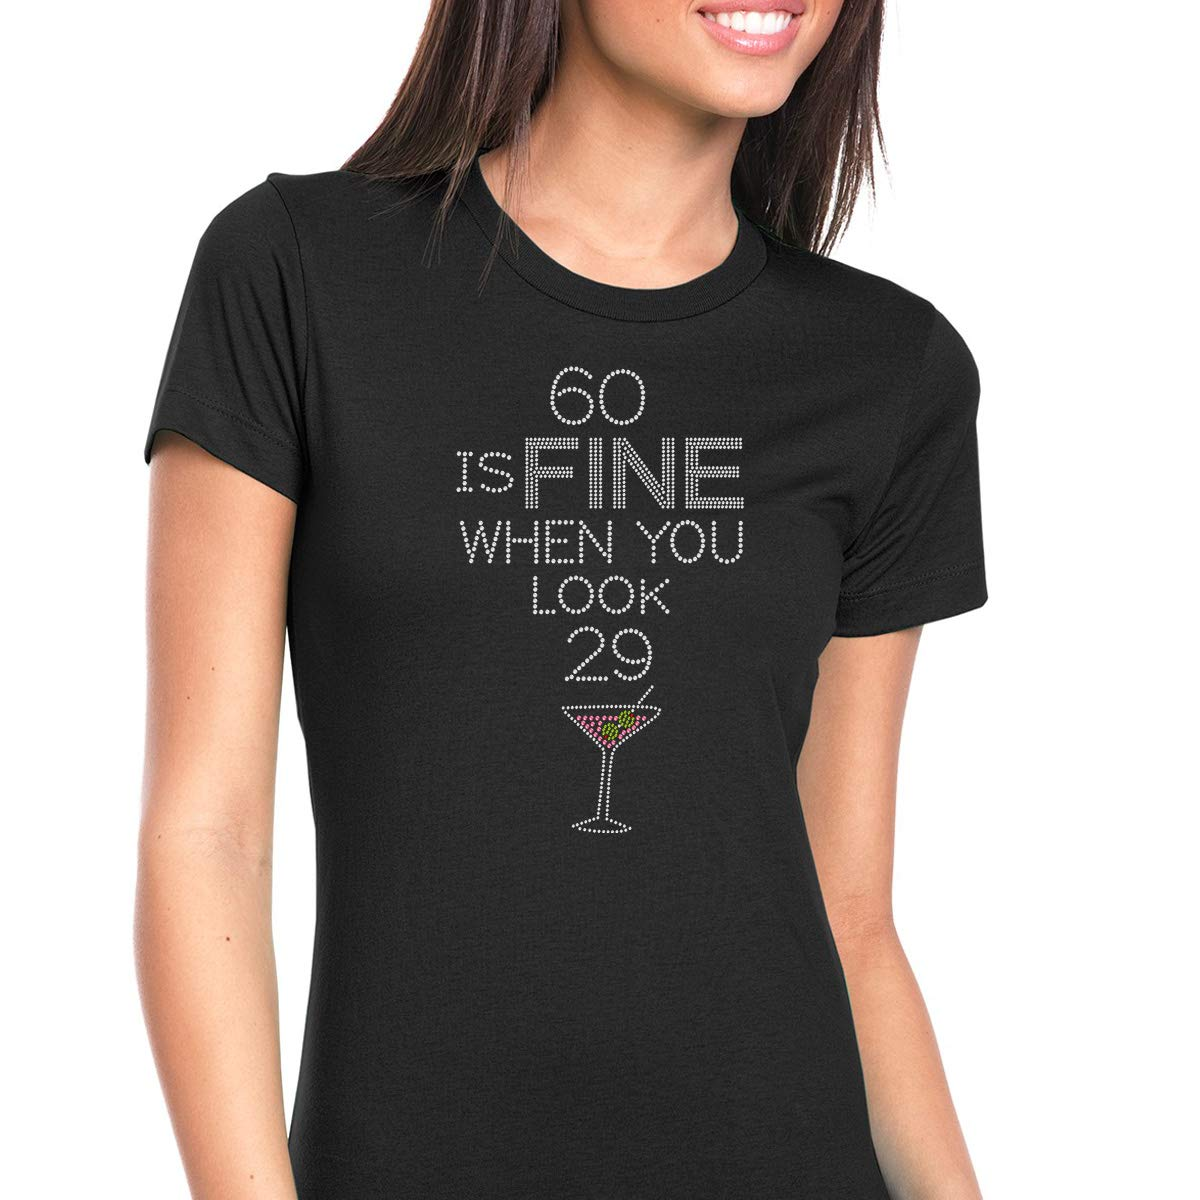 Rhinestone Wear Womens T-Shirt Bling Black Tee 60 is Fine When You Look 29 Crew Neck X-Large